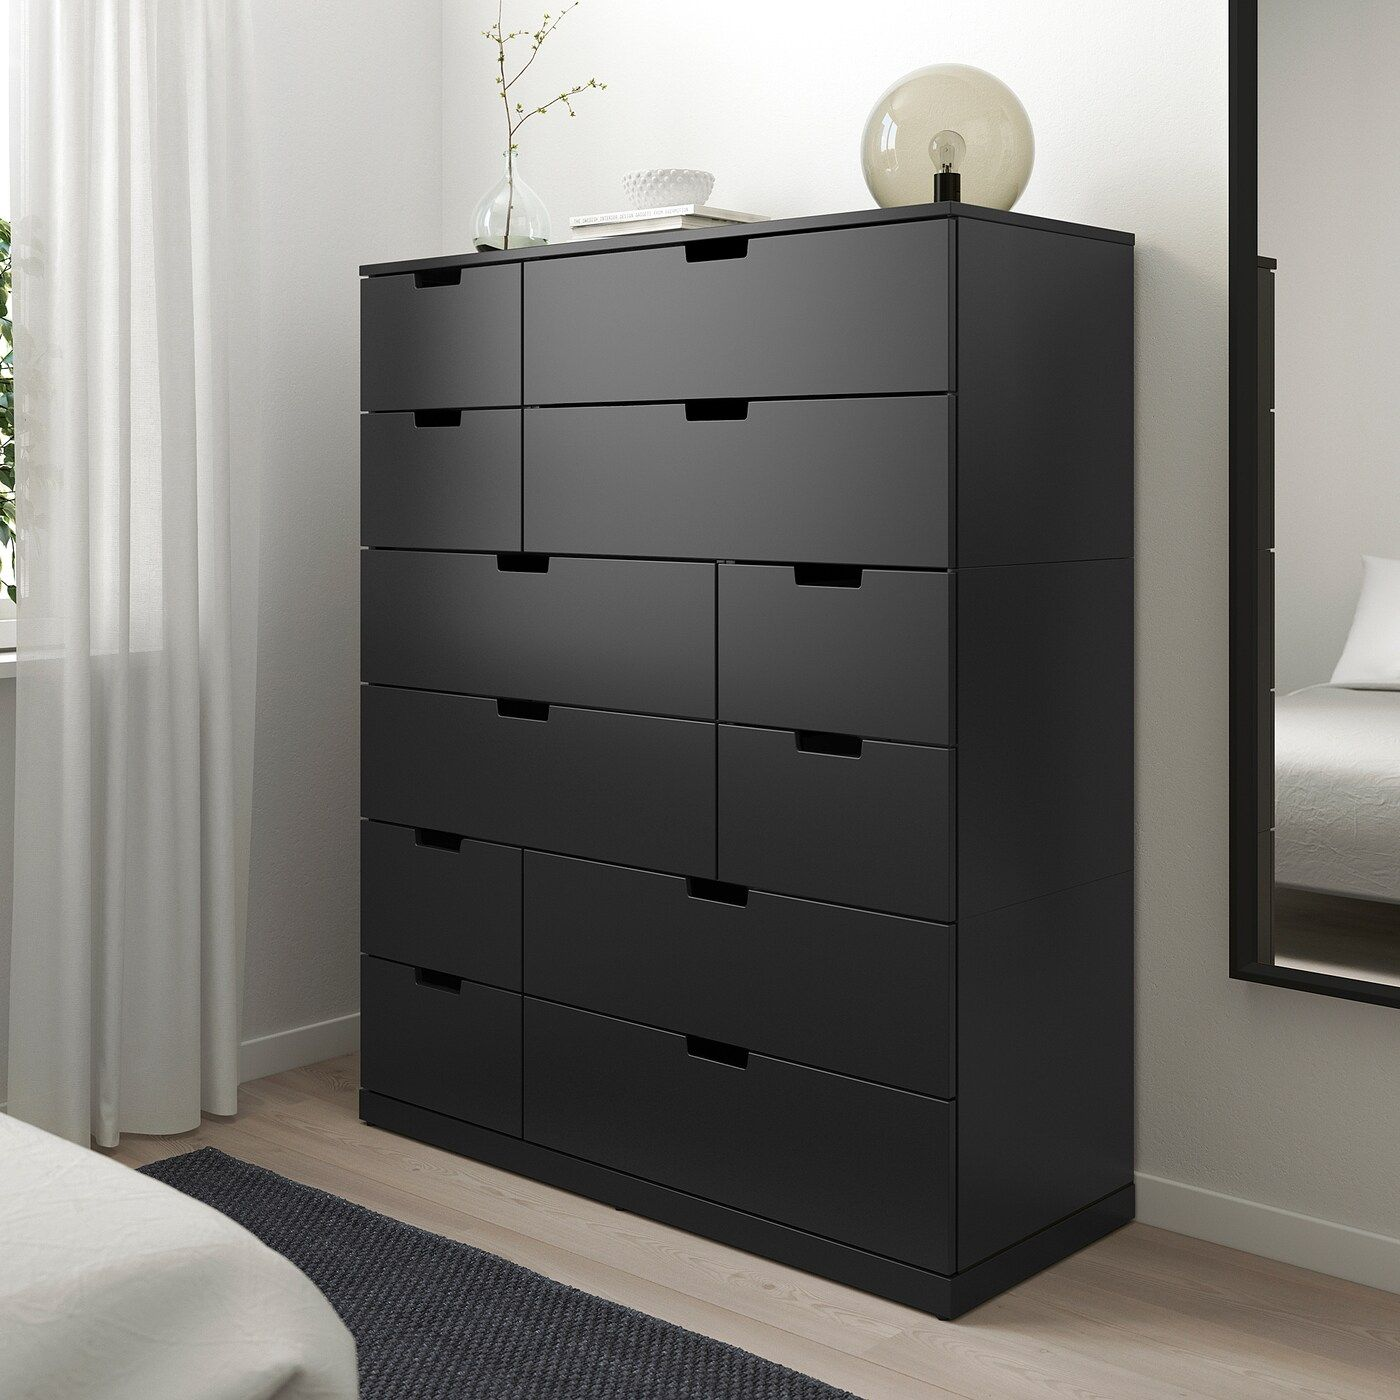 Nordli 12 Drawer Chest Anthracite 47 1 4x57 1 8 In 2020 Ikea